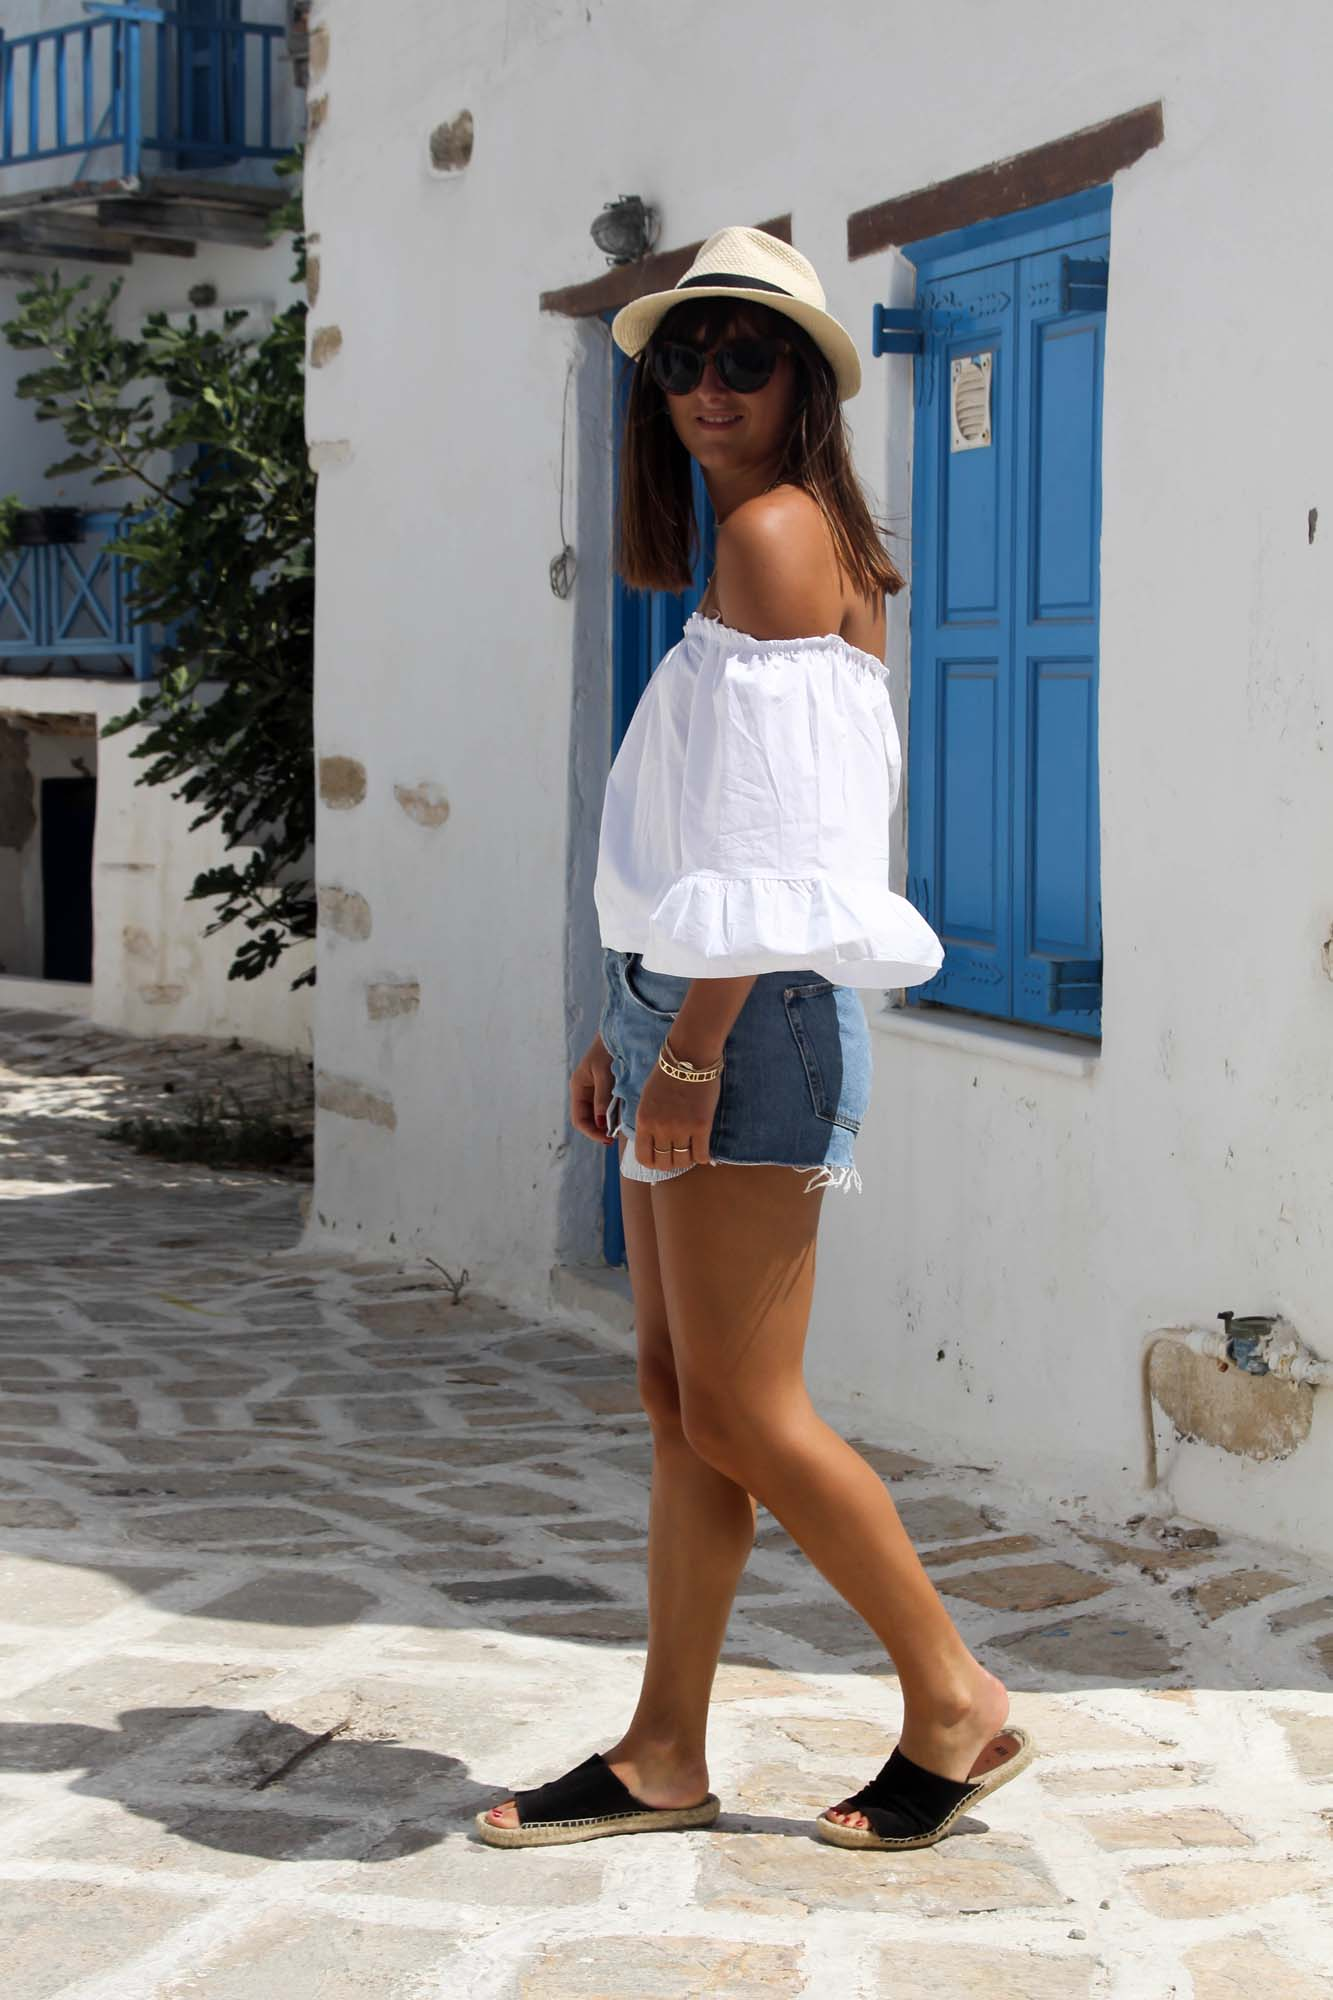 look-greece-paros-linstantflo-11-sur-16